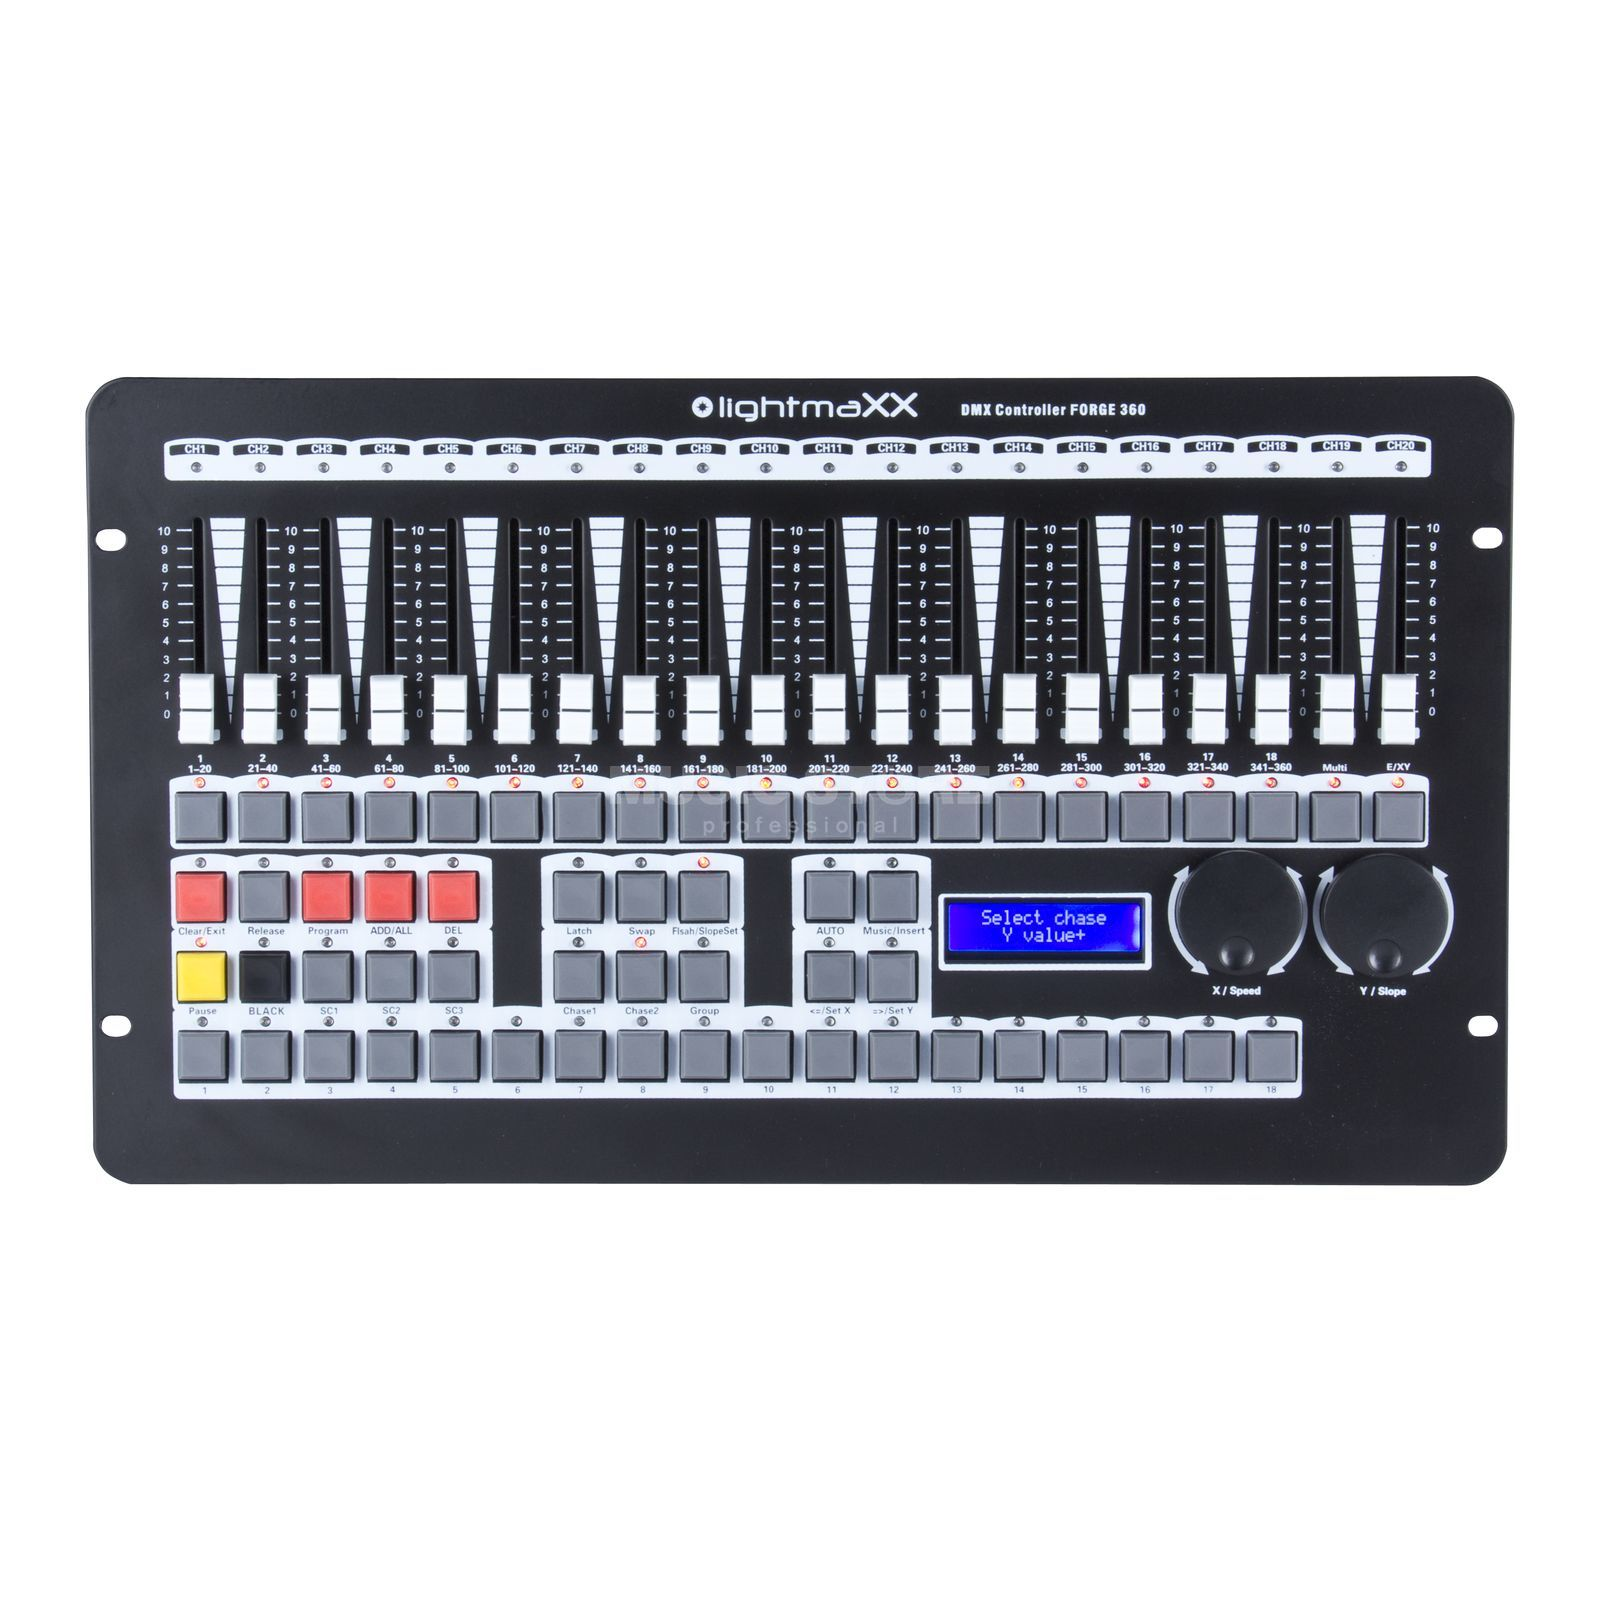 lightmaXX DMX Controller FORGE 360 540 Scenes,36 Chaser,18 Fix. Product Image